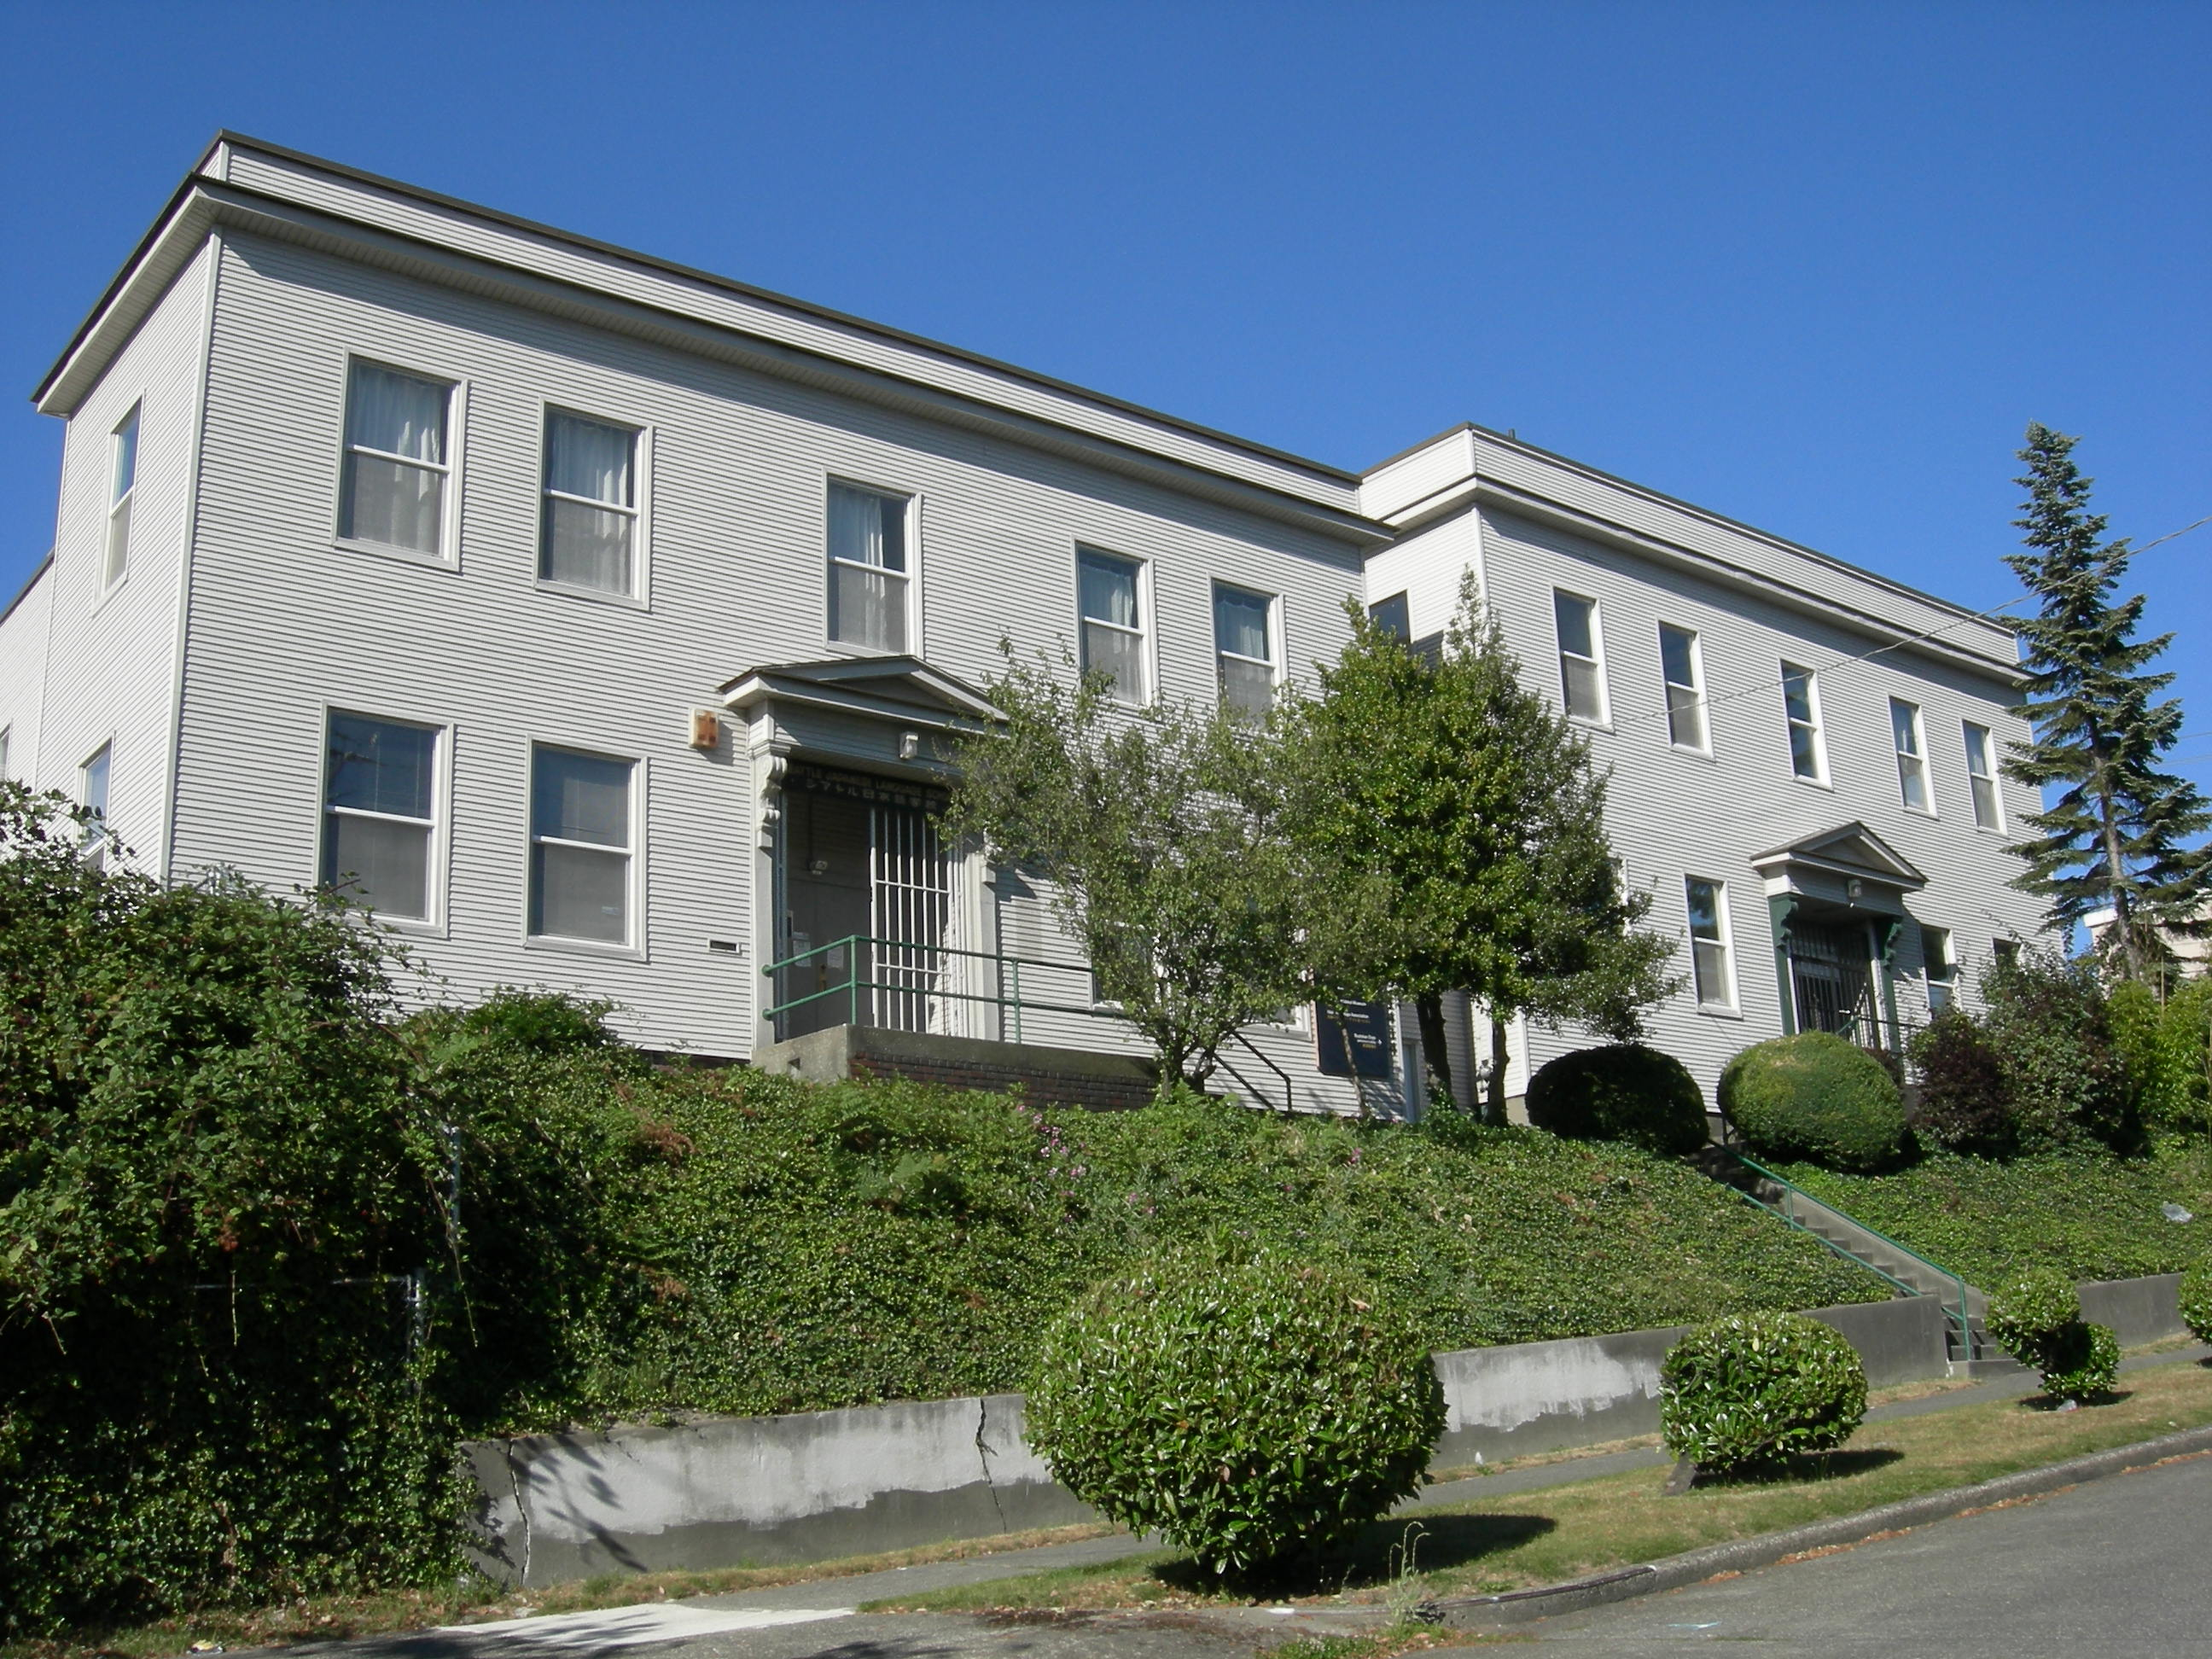 Nihon Go Gakko (Japanese Language School) building, now home to the Japanese Cultural and Community Center of Washington (image from Wikimedia)